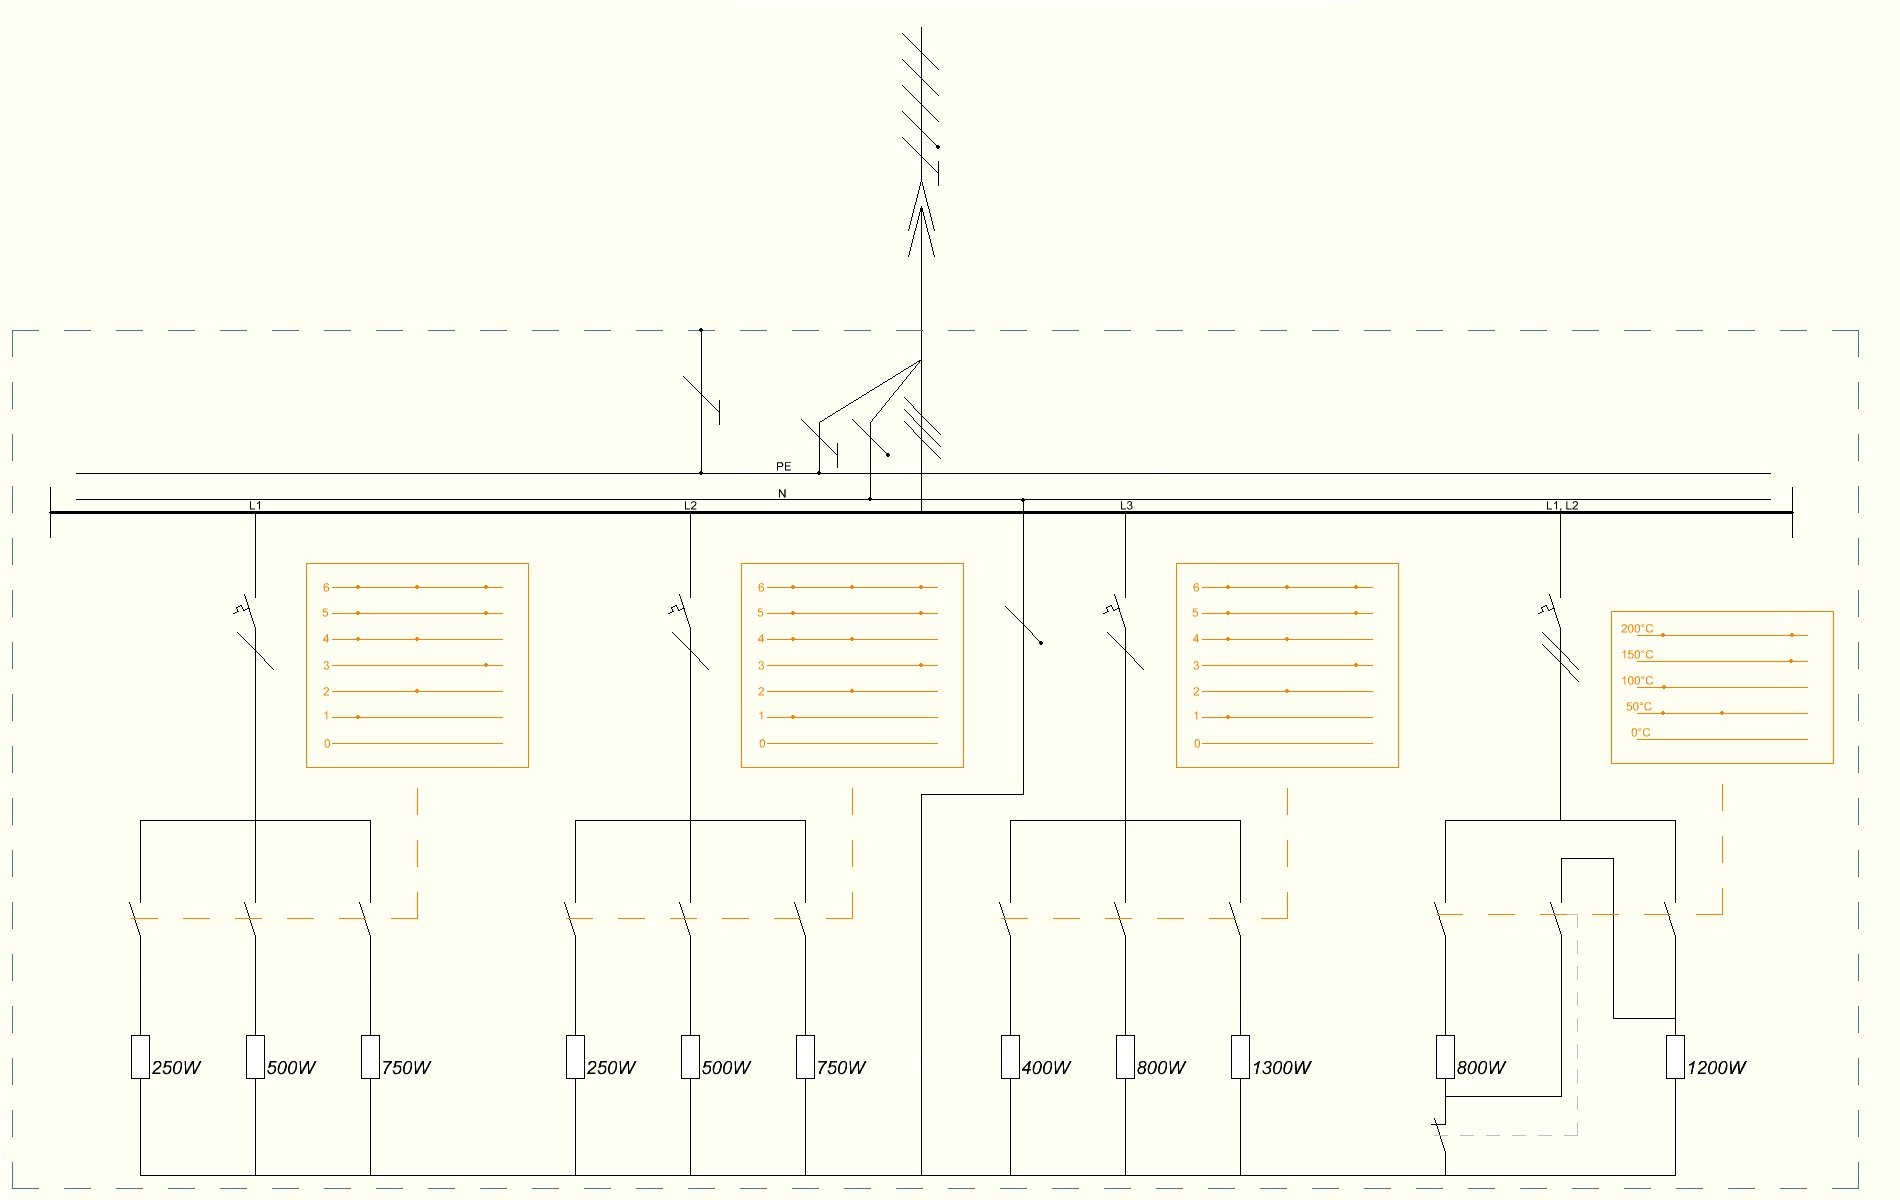 Schematic_wiring_diagram_of_electrical_stove file schematic wiring diagram of electrical stove jpg wikimedia stove diagram at bayanpartner.co